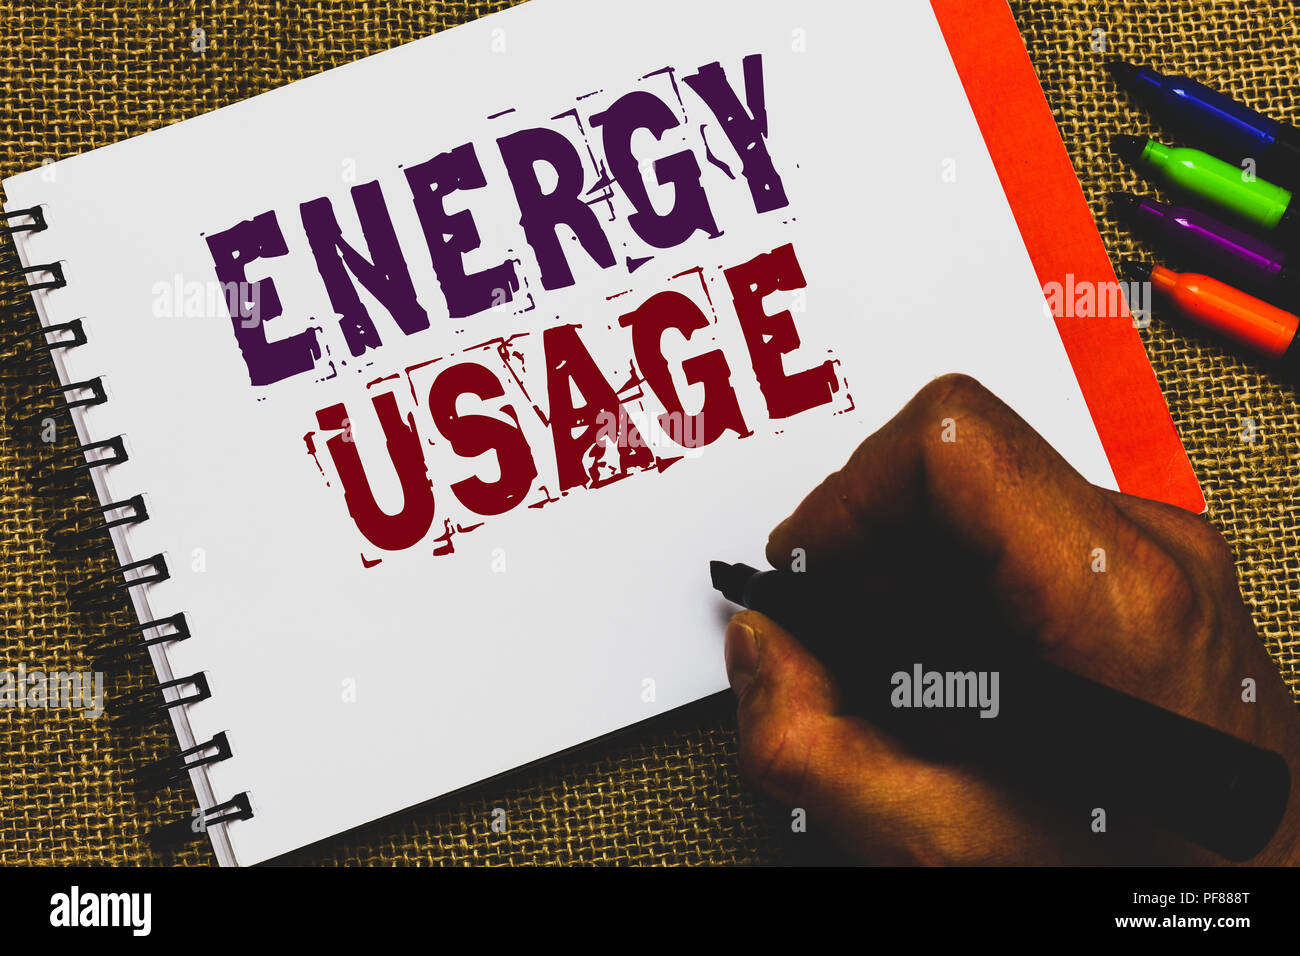 Word writing text Energy Usage. Business concept for Amount of energy consumed or used in a process or system Man hand holding marker notebook paper c - Stock Image